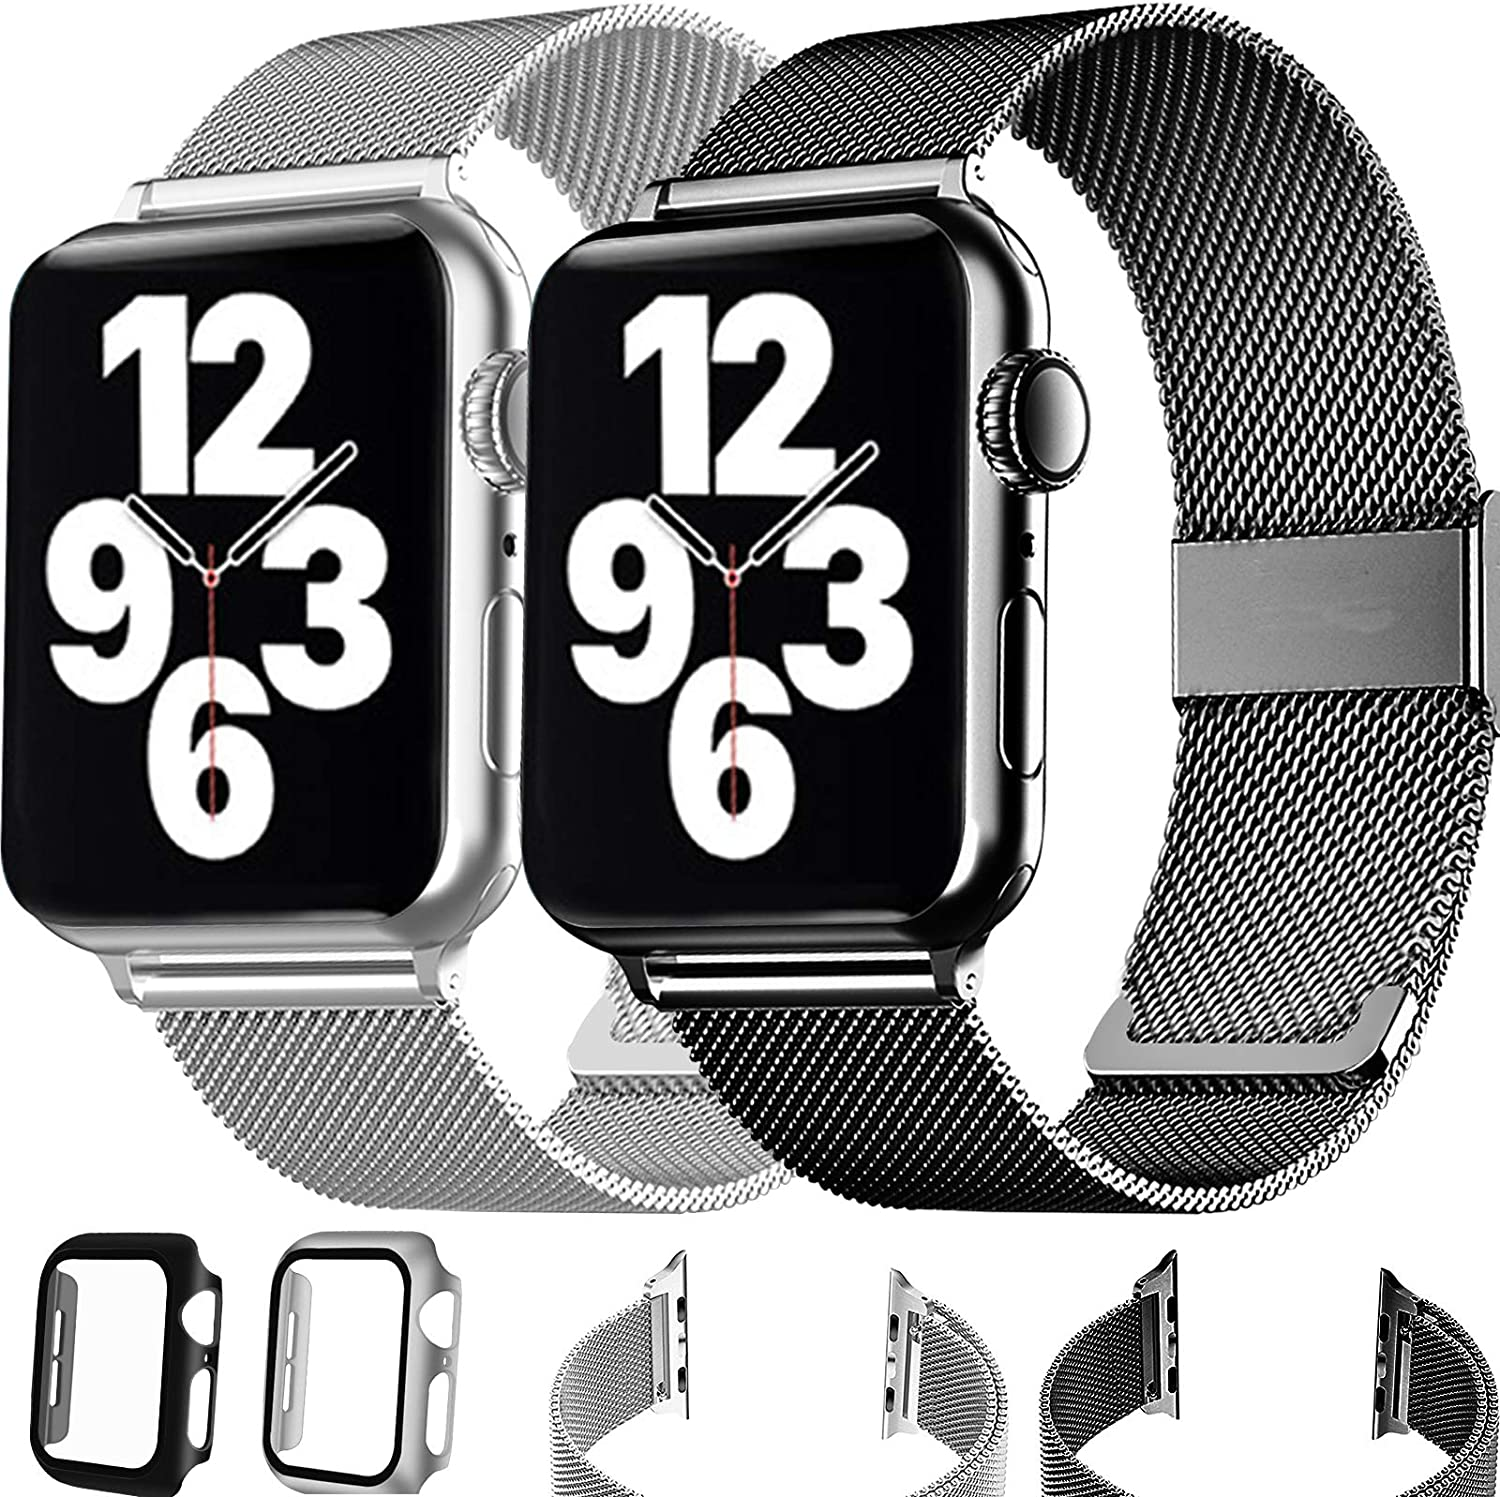 Magnetic Metal Bands Compatible with Apple Watch Bands 38mm 40mm 42mm 44mm with Case Women Men,Adjustable Stainless Steel Magnetic Strap for iWatch Series SE 6/5/4/3/2/1, 2Case and 2Band